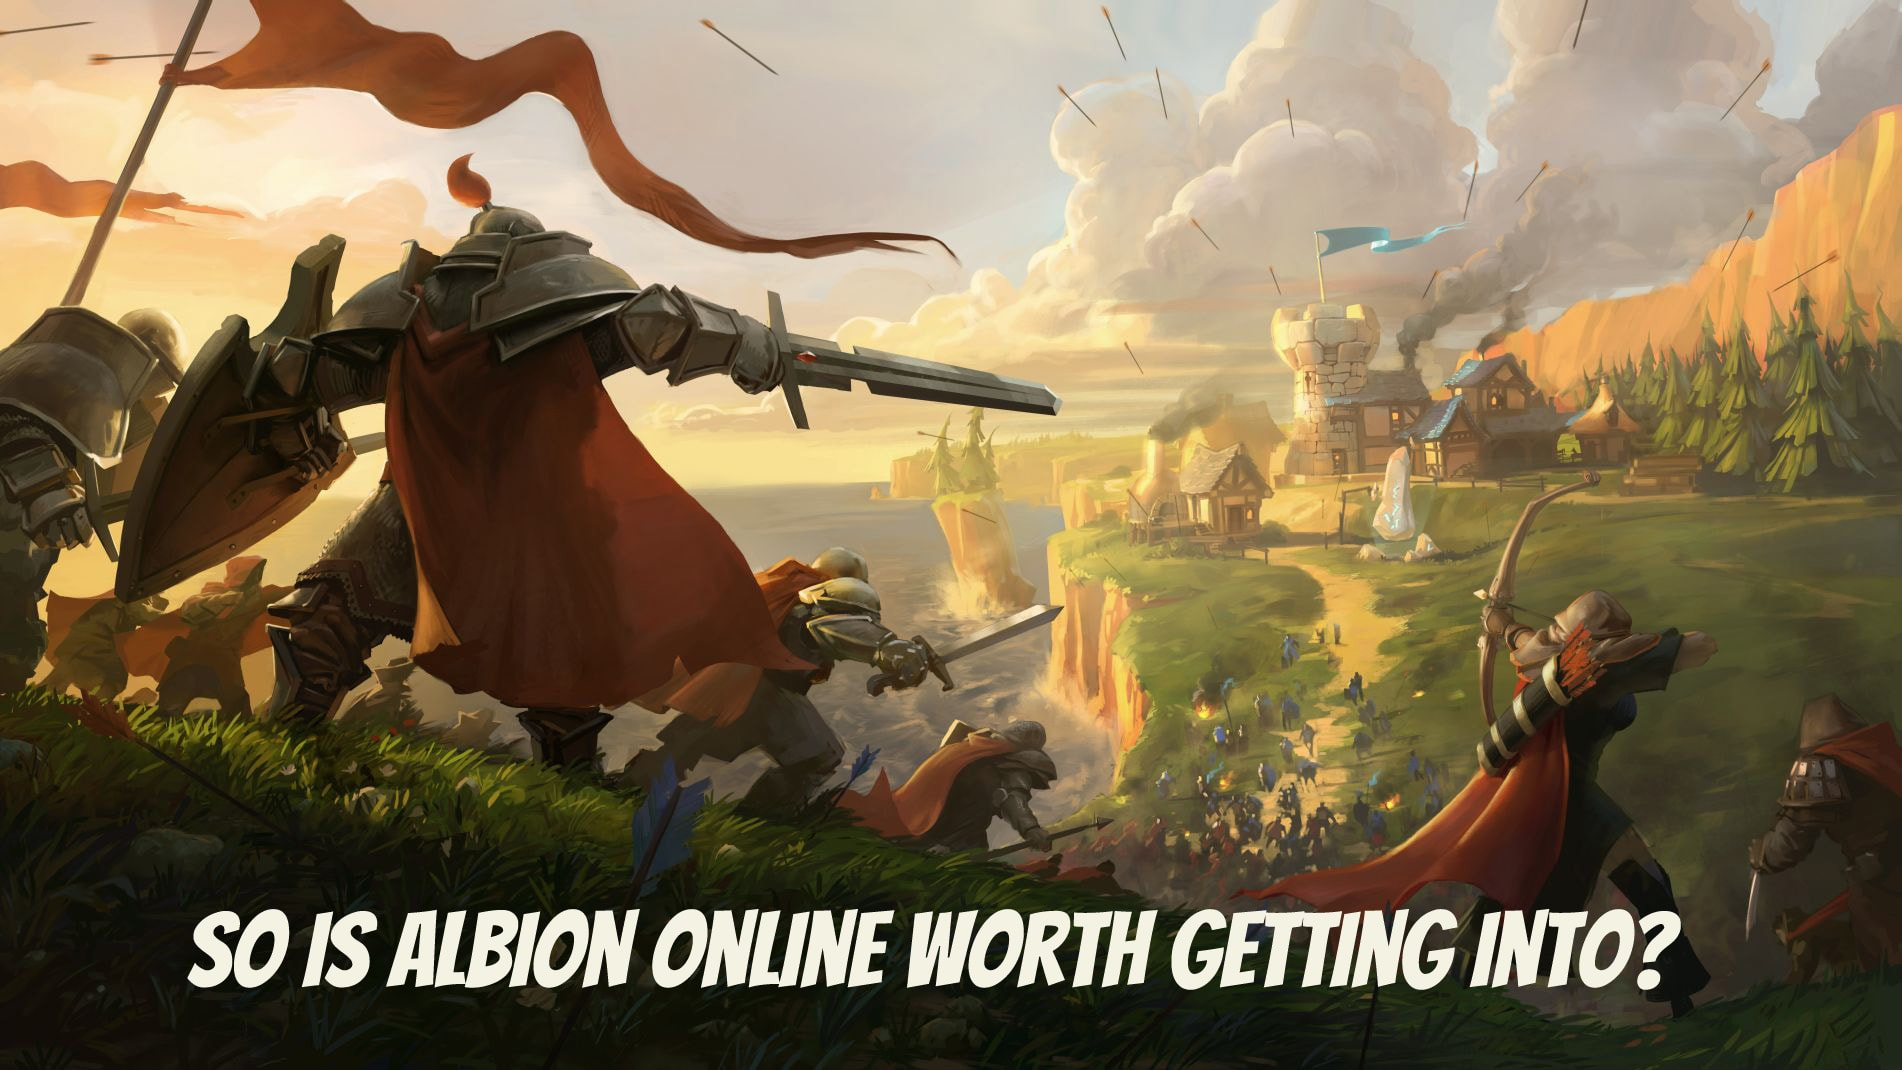 Free online gold finding games